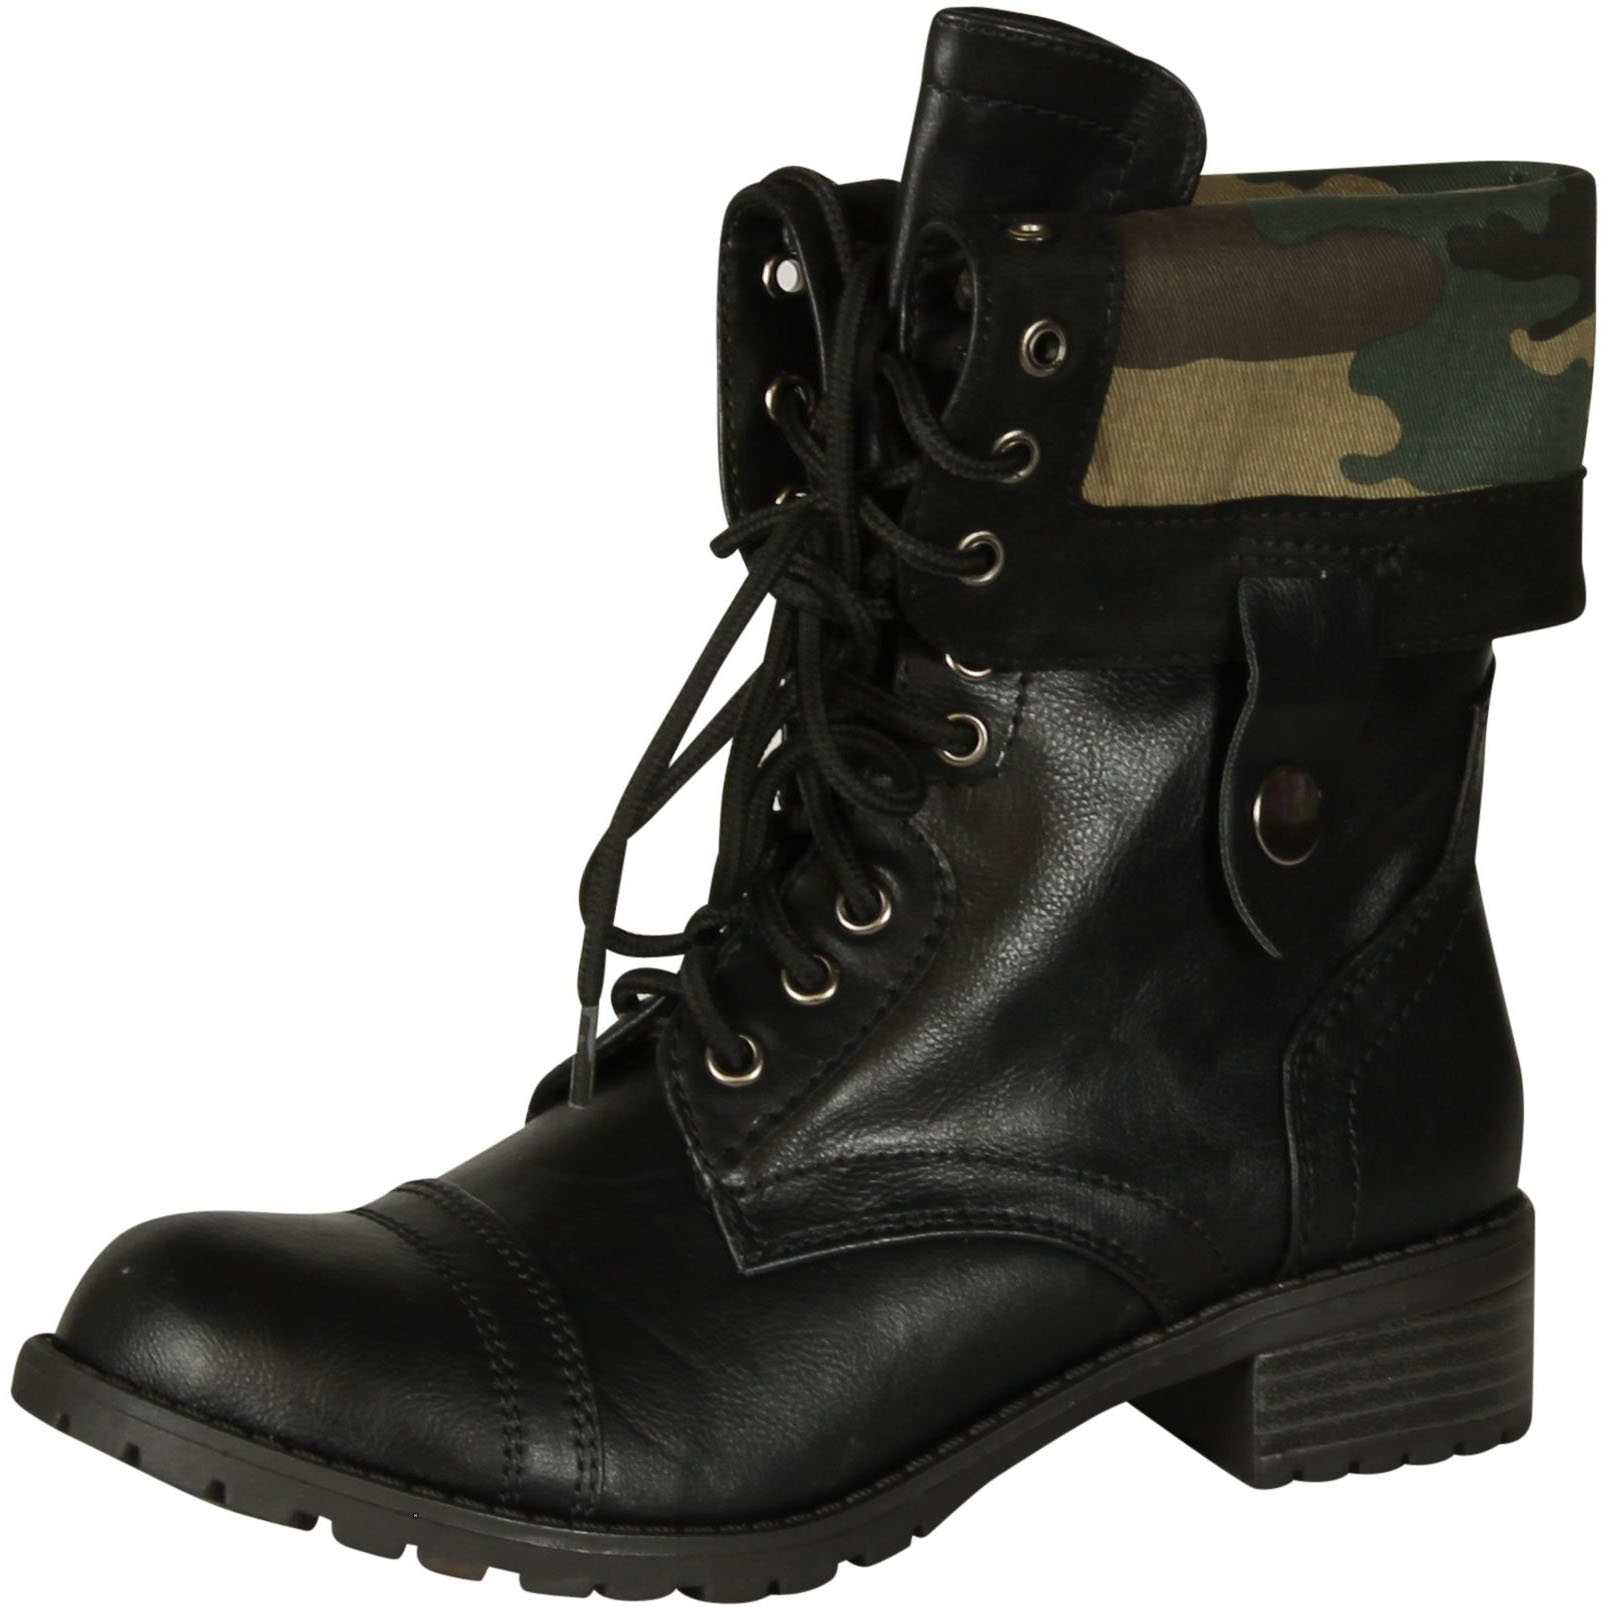 Qupid Military Combat Boot Fold-over Cuff with Plaid Lining